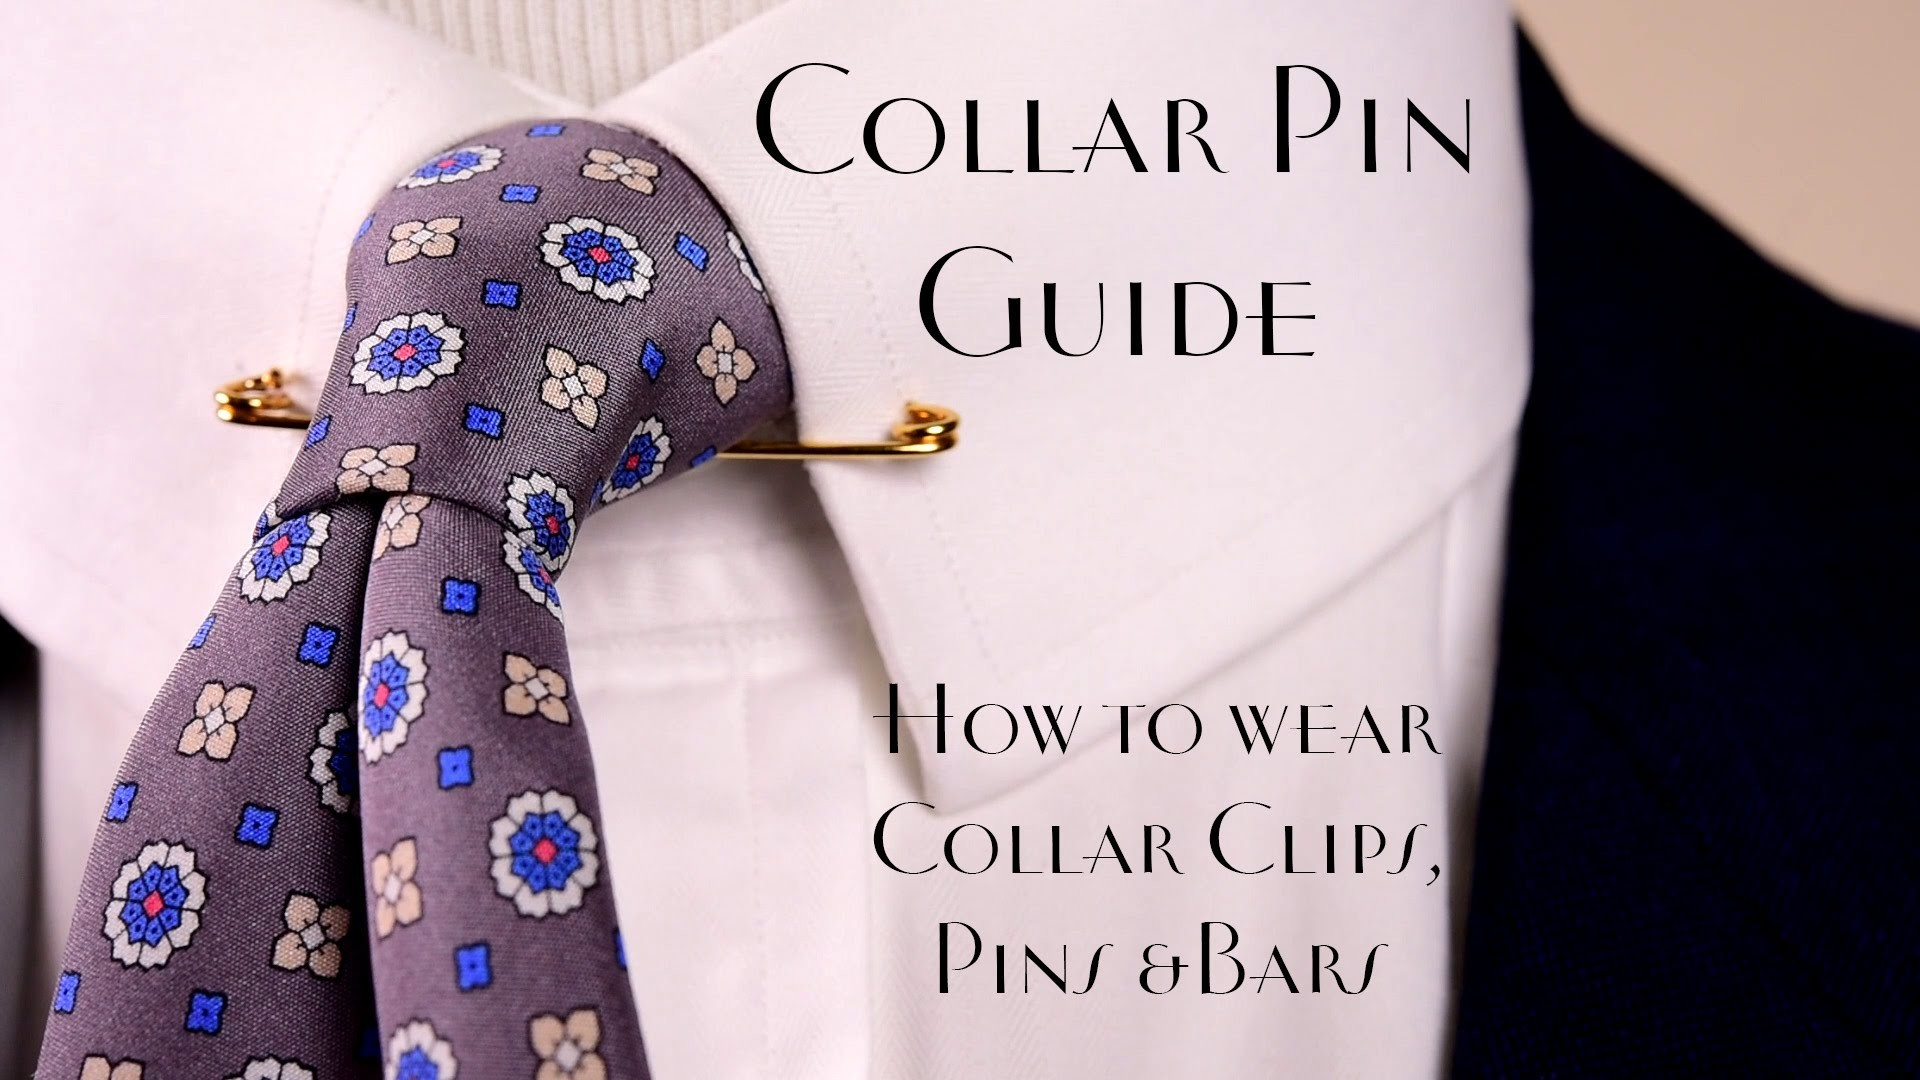 Collar Pin Guide & How to wear Collar Bars and Clips